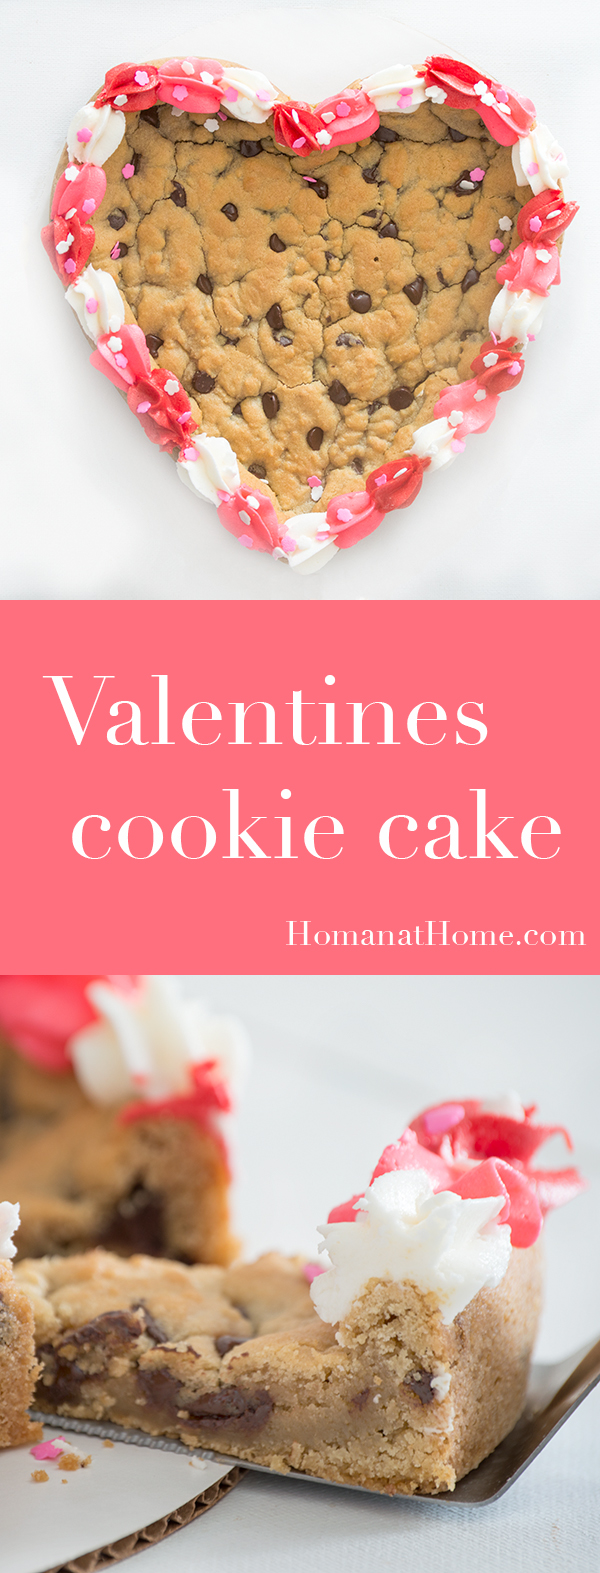 Valentines Cookie Cake | Homan at Home